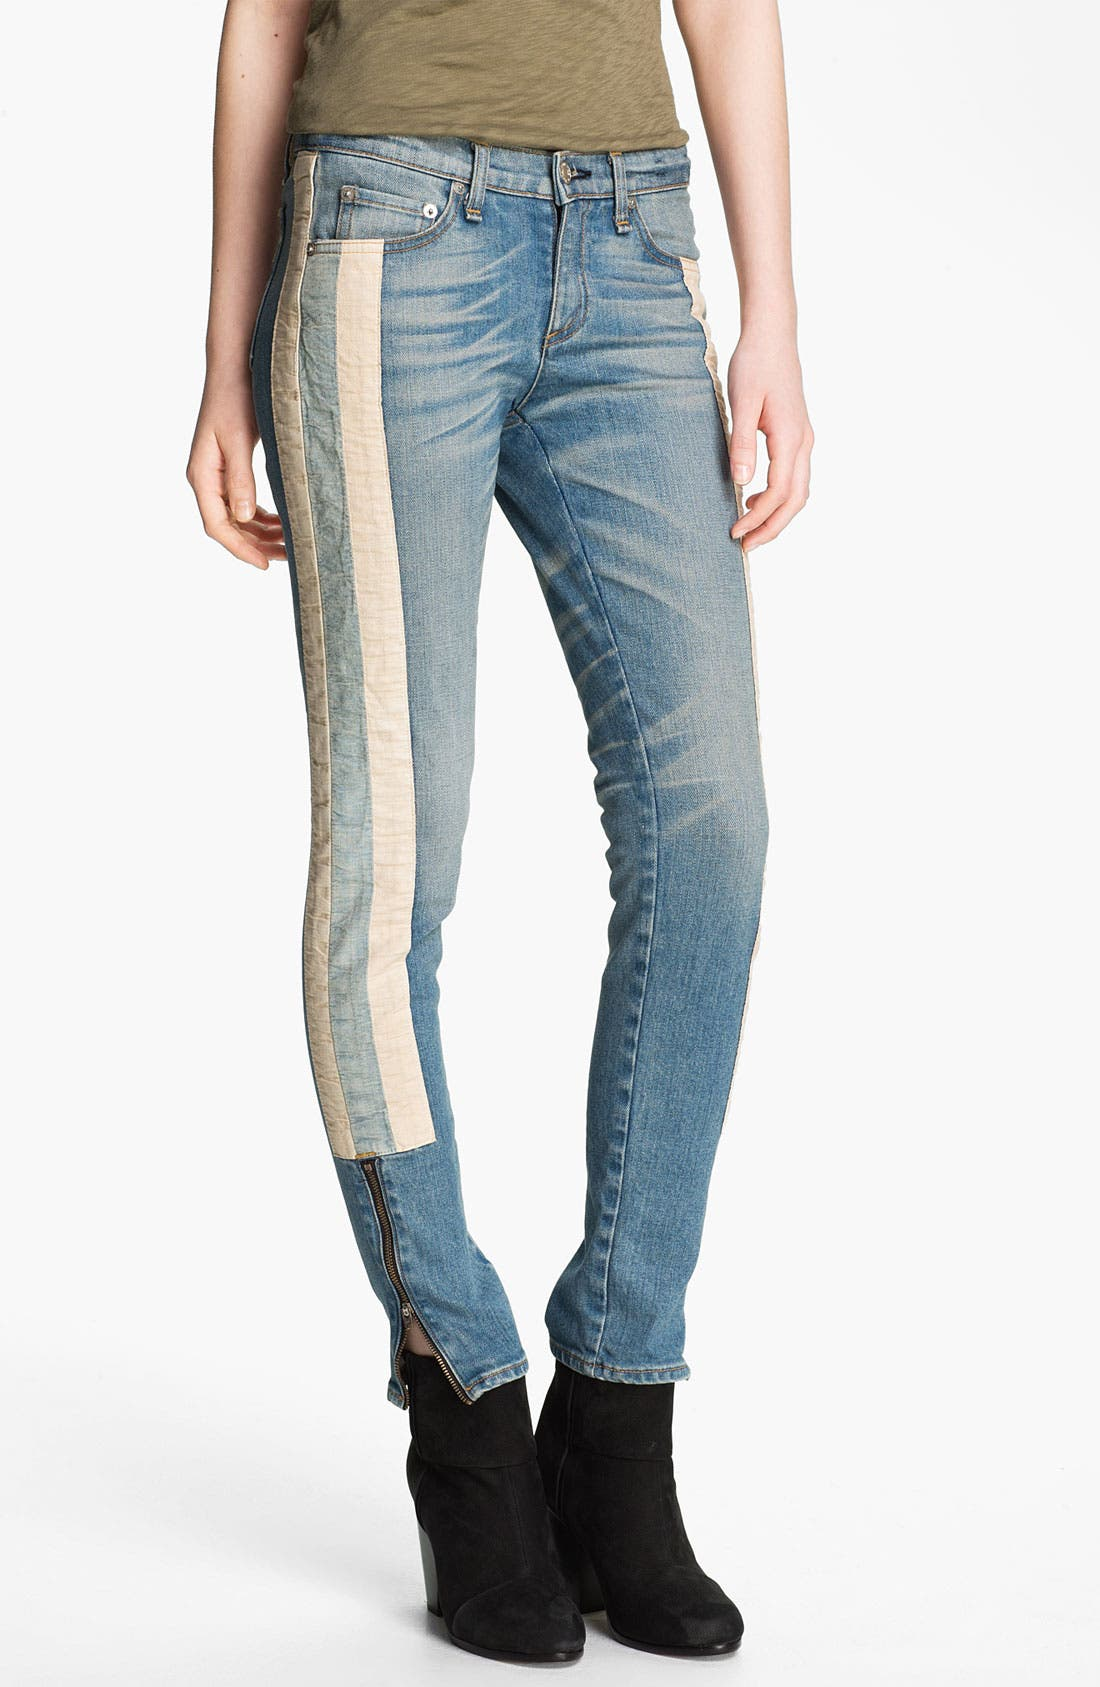 Alternate Image 1 Selected - rag & bone/JEAN 'The Skinny Racer' Jeans